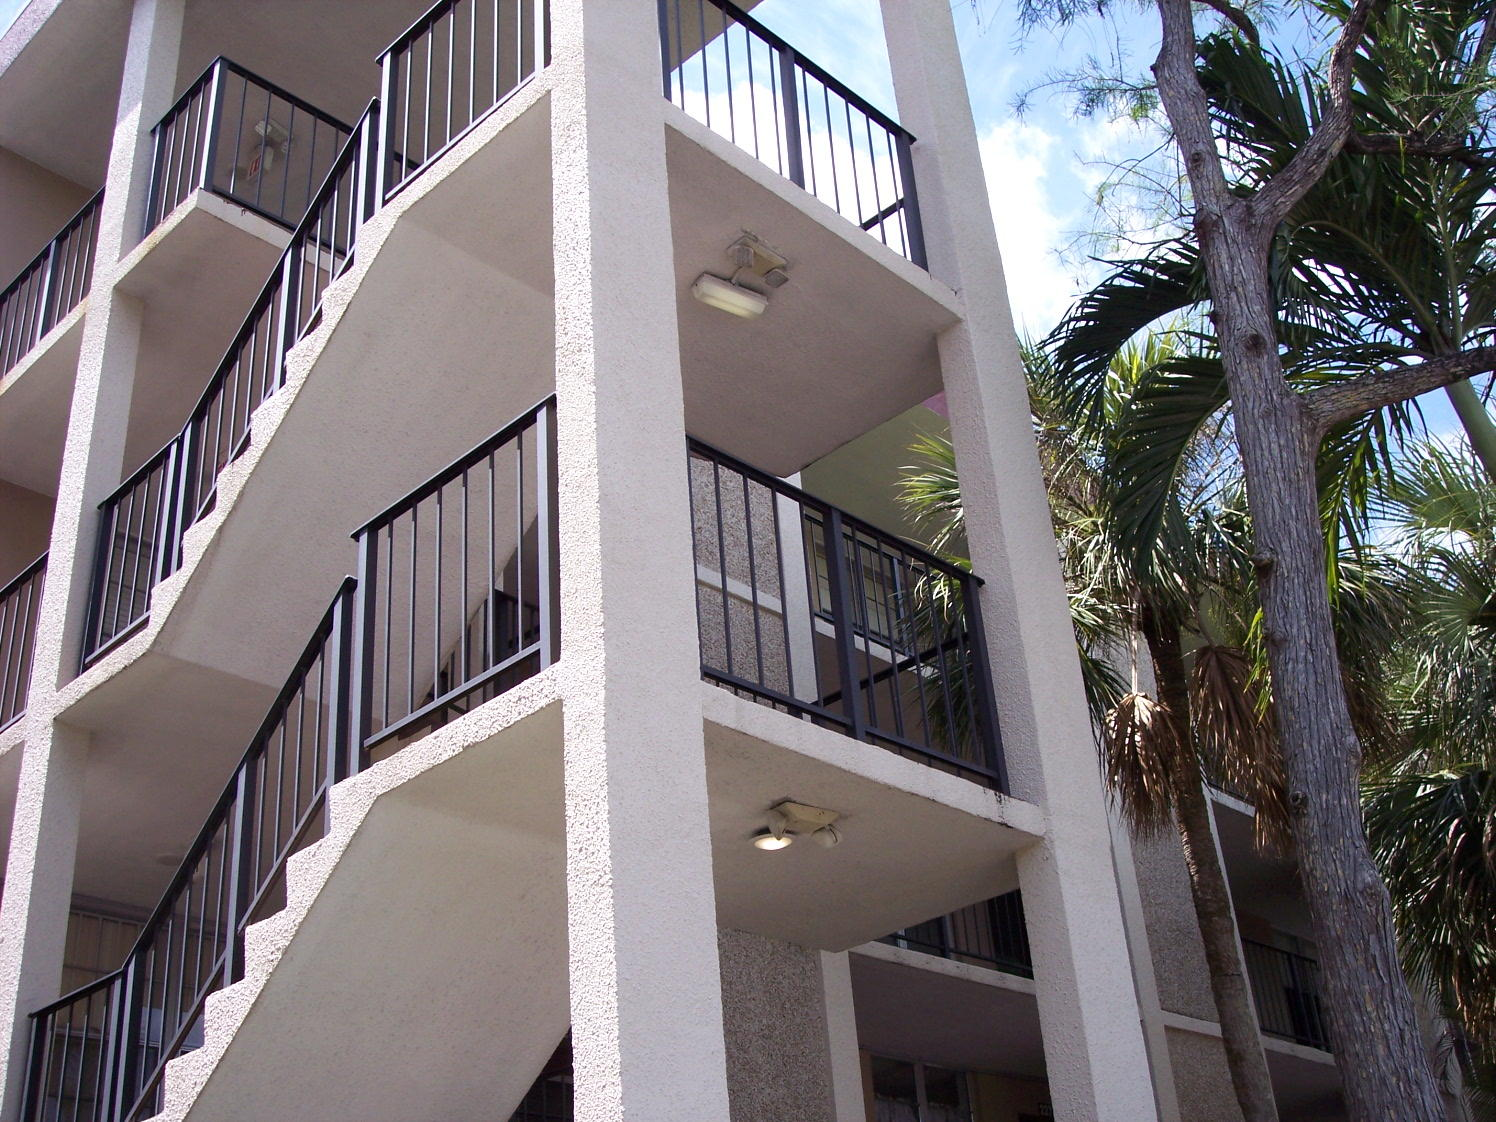 2650 49th Avenue, Lauderdale Lakes, Florida 33313, 2 Bedrooms Bedrooms, ,2 BathroomsBathrooms,Residential,For Sale,49th,RX-10707729